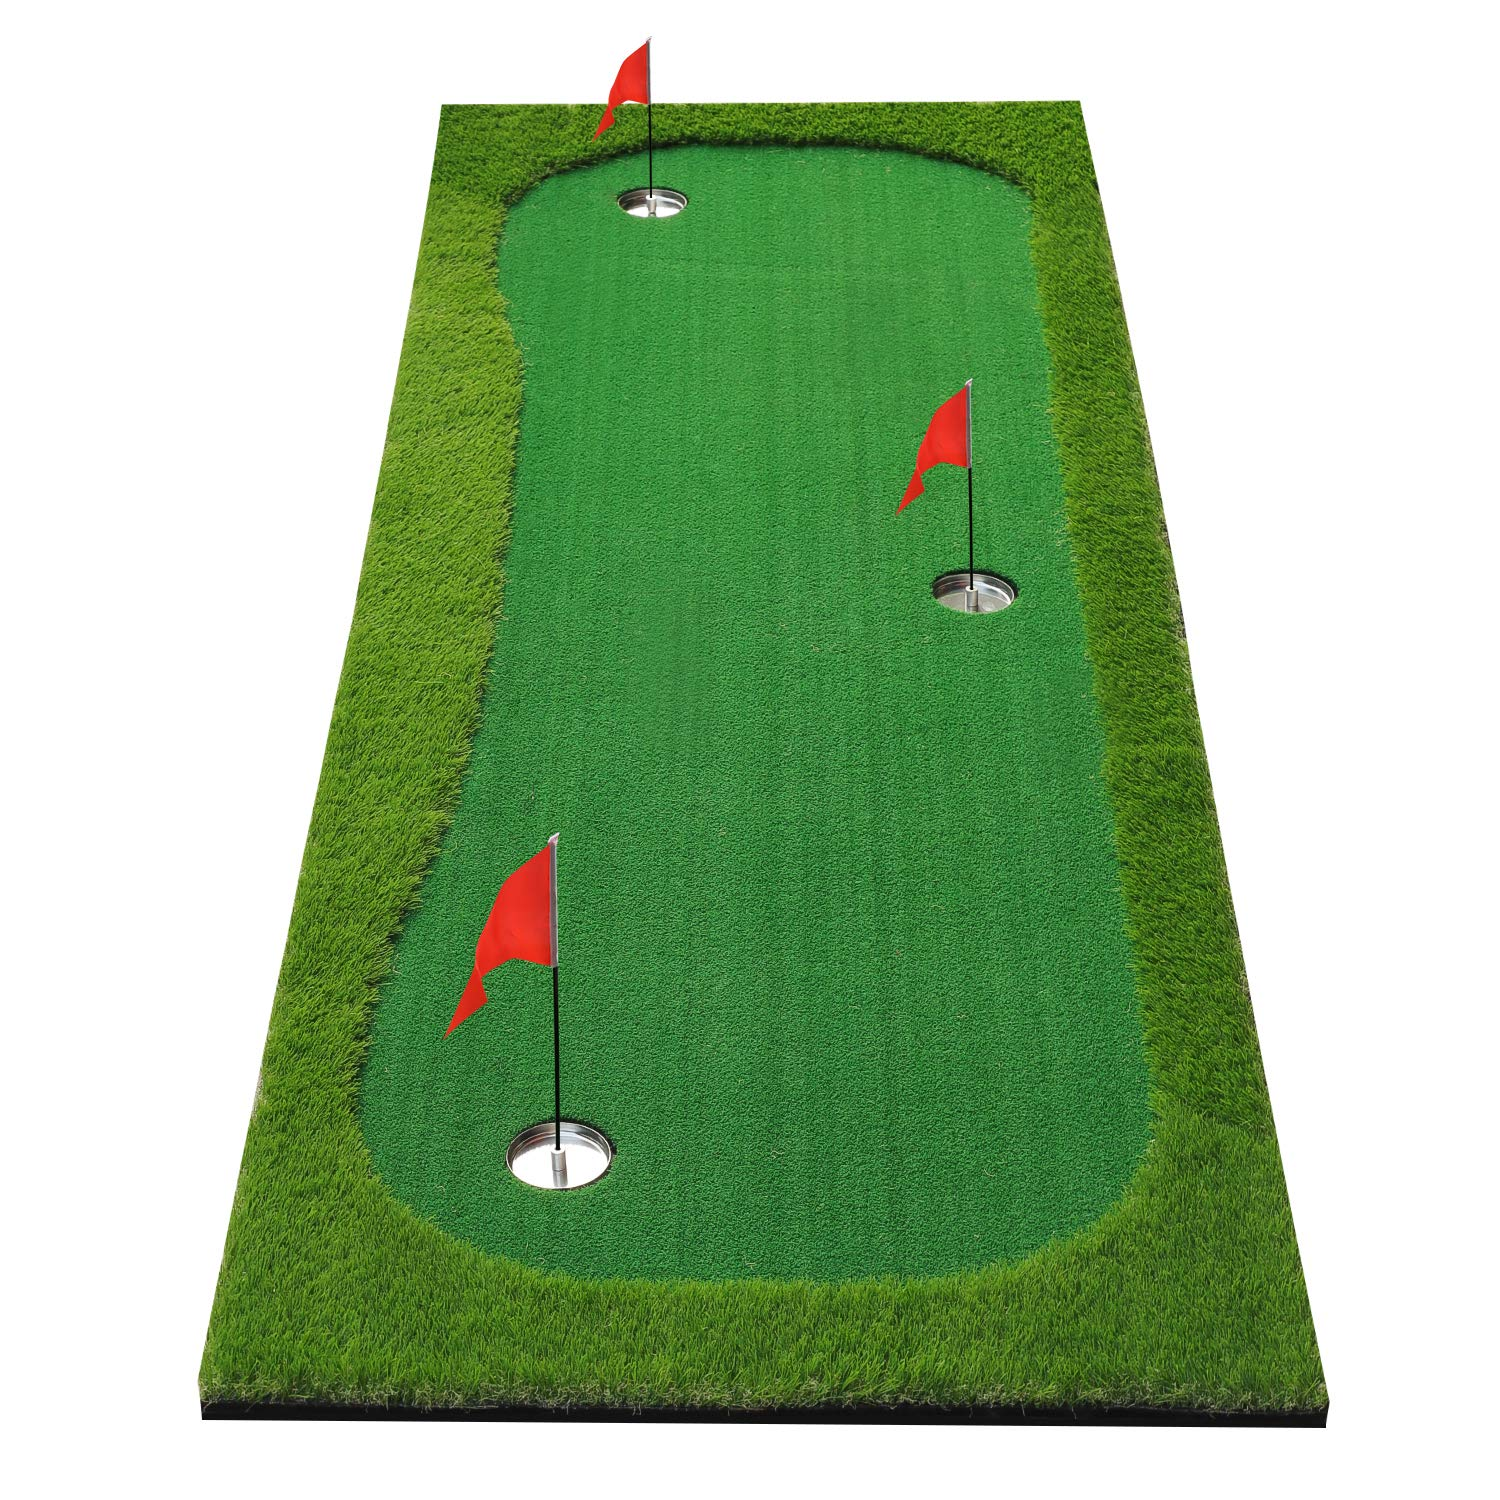 BOBURN Golf Putting Green/Mat-Golf Training Mat- Professional Golf Practice Mat- Green Long Challenging Putter for Indoor/Outdoor (Green, 3.3x10ft) by BOBURN